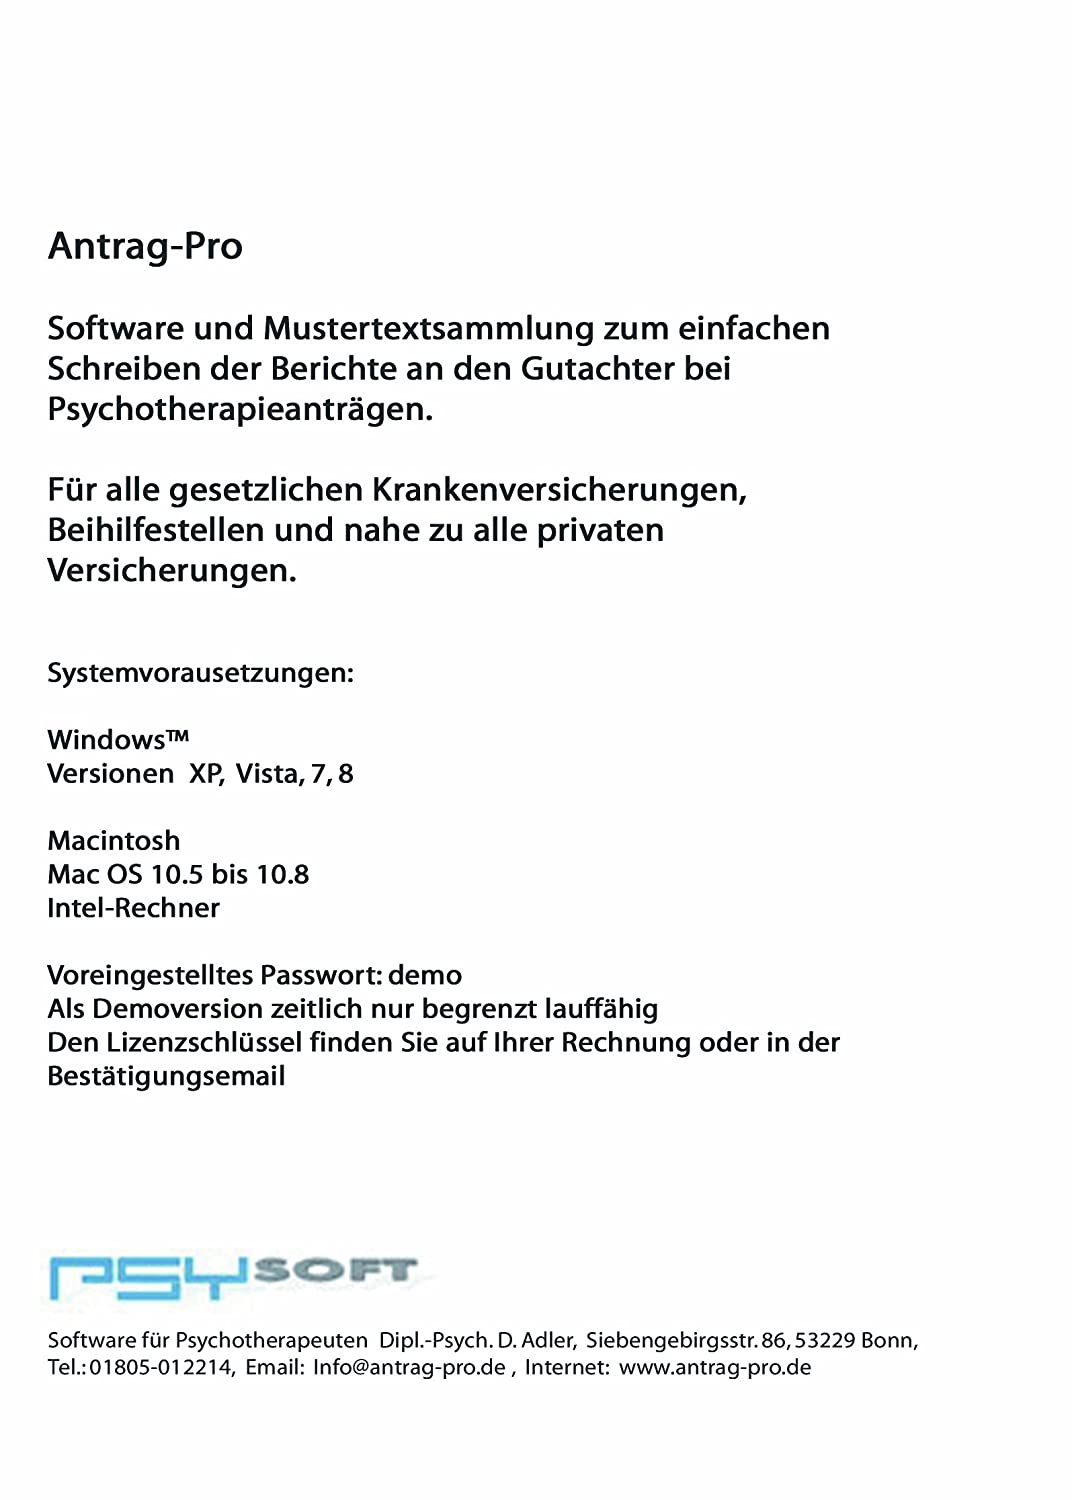 Antrag Pro Enterprise: Amazon.de: Software